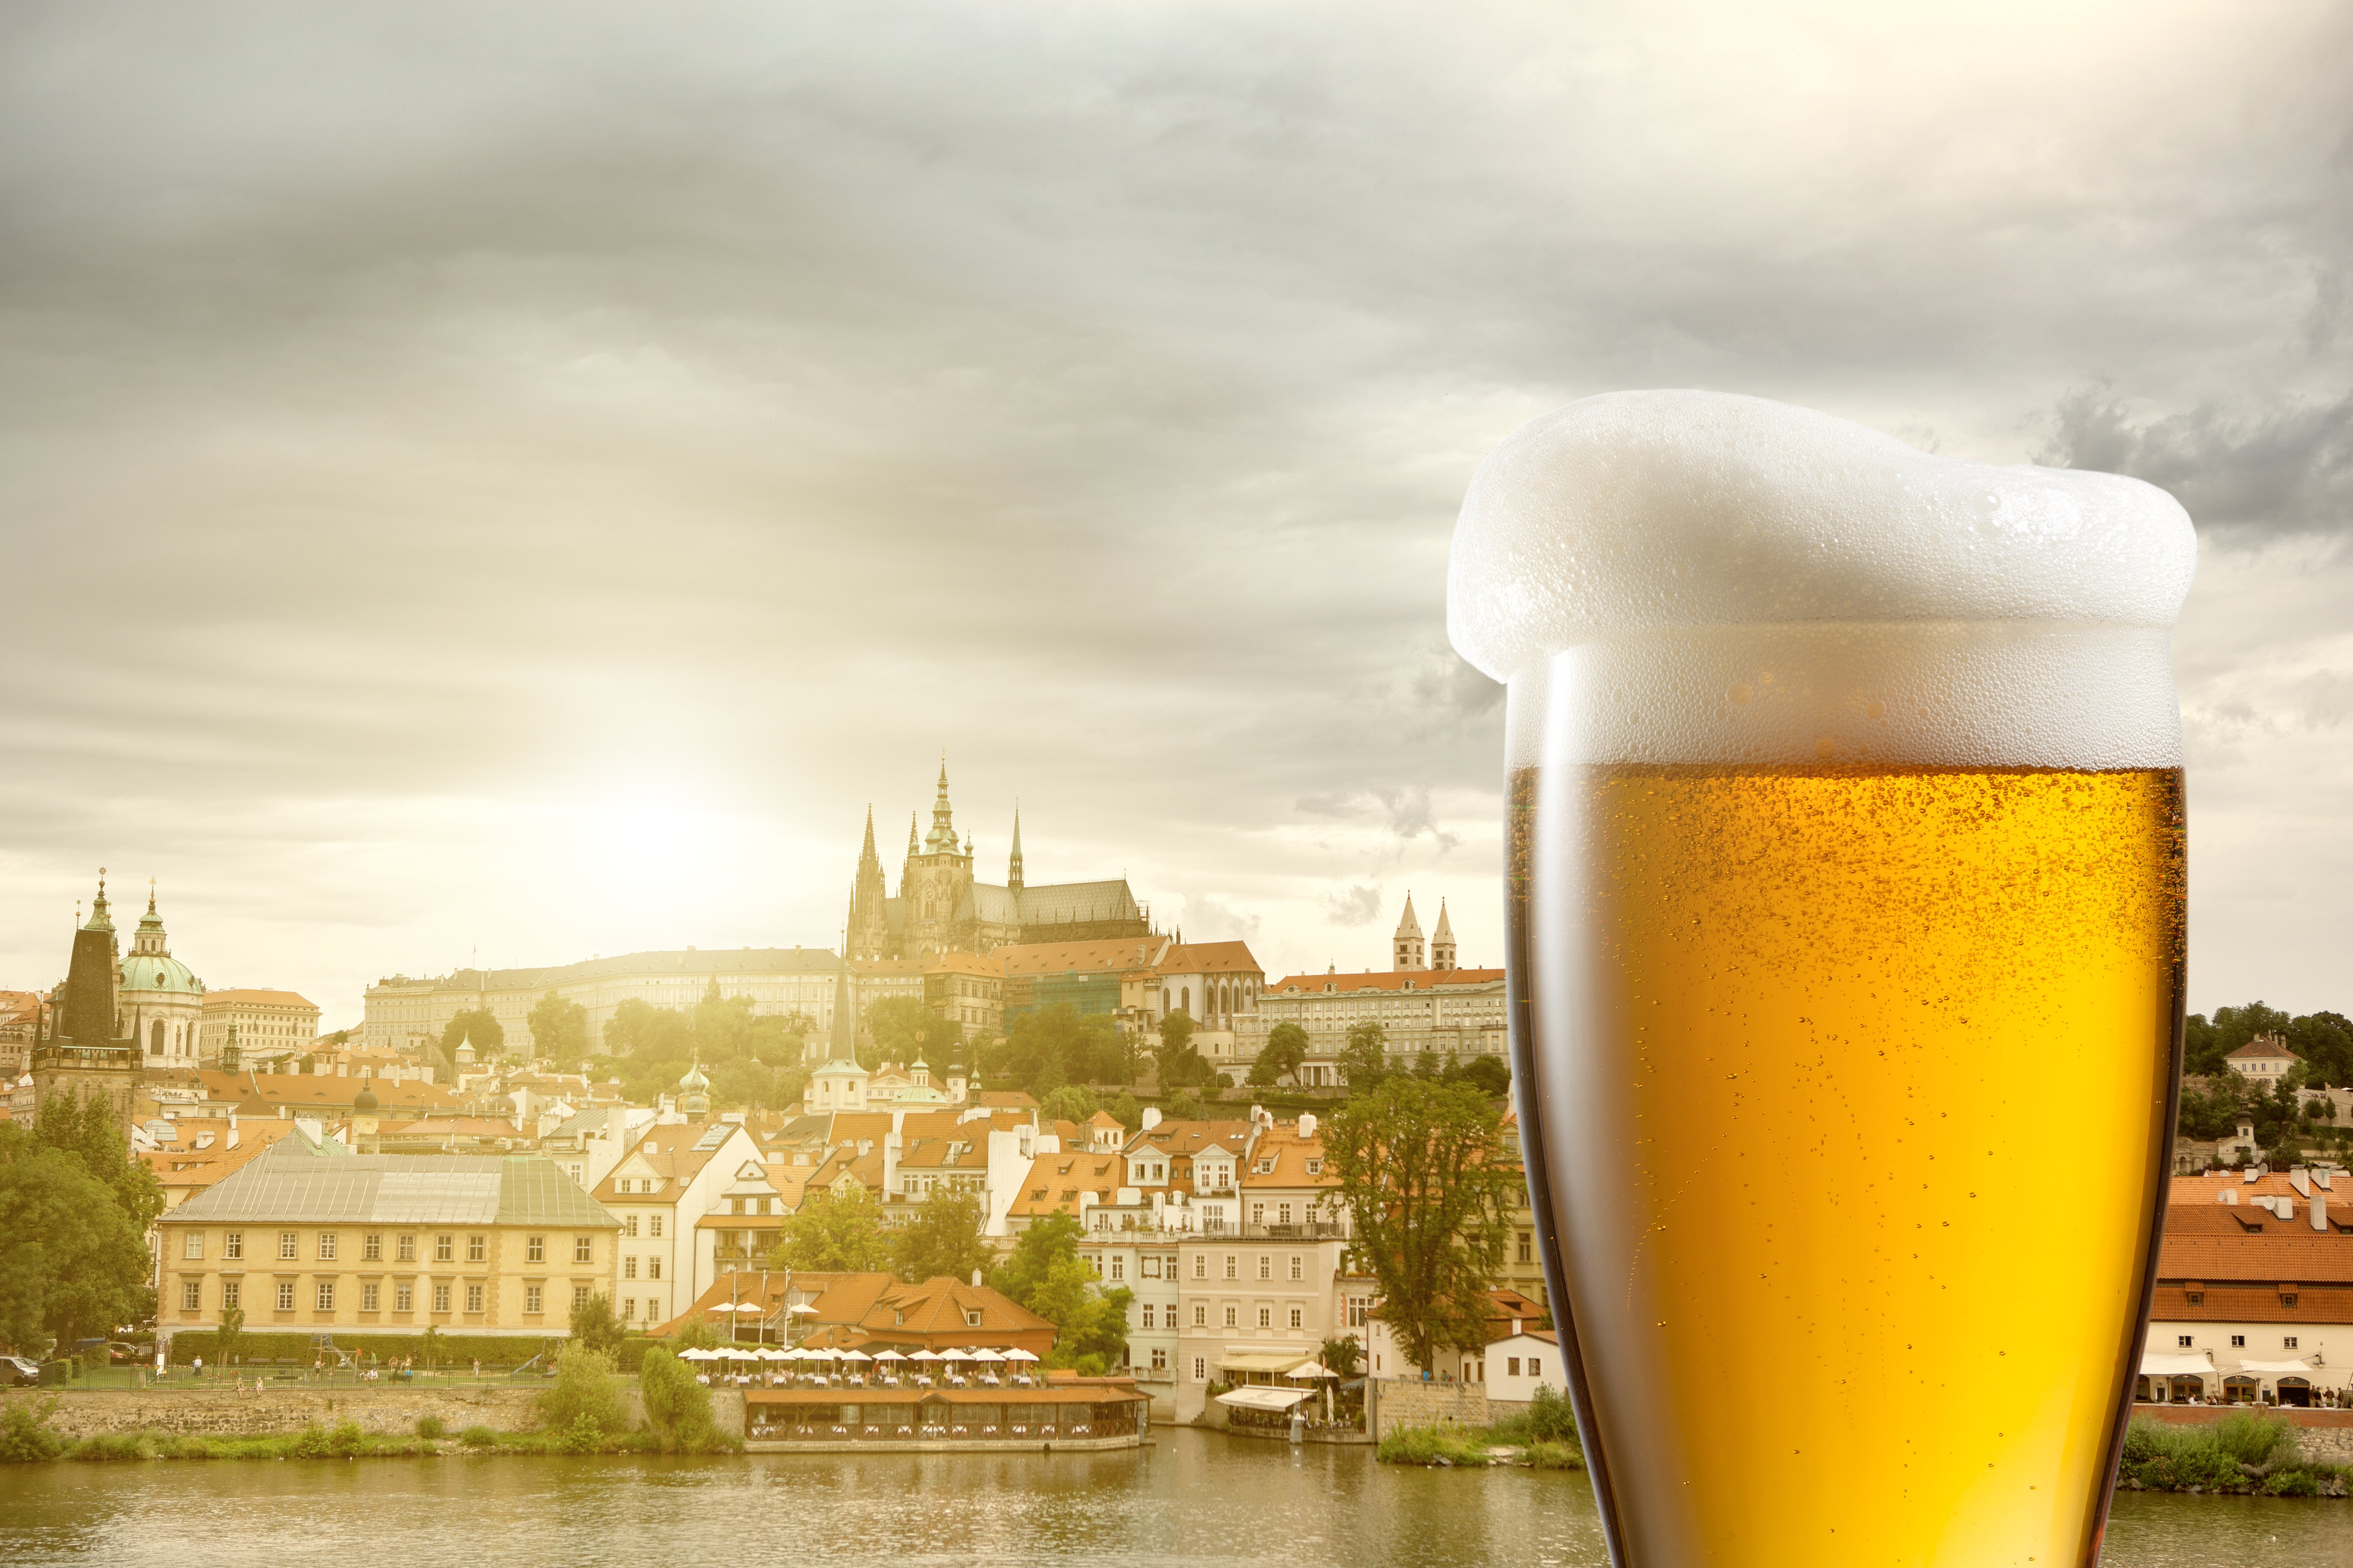 7755470-glass-of-beer-against-view-of-the-st-vitus-cathedral-in-prague